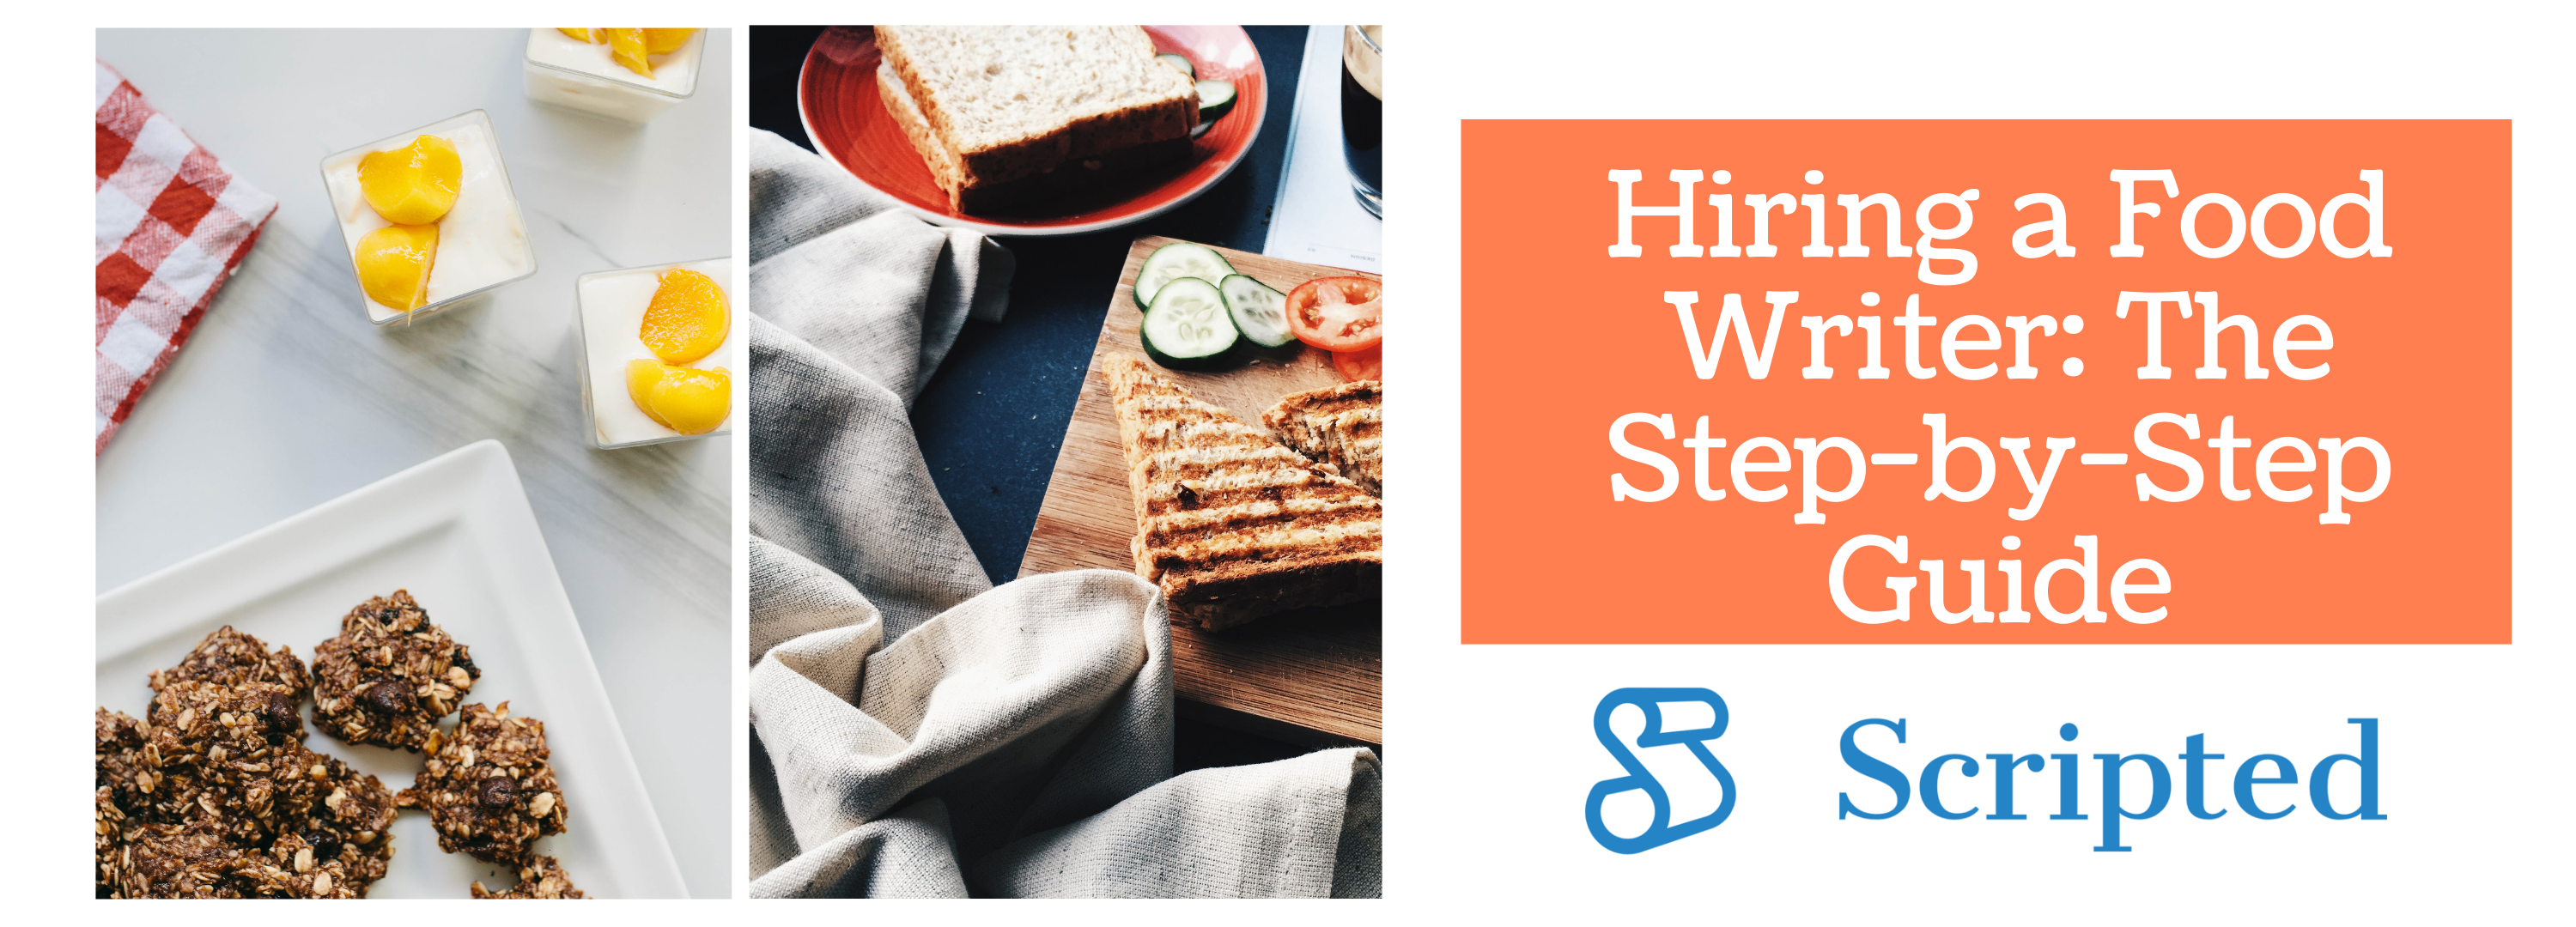 Hiring a Food Writer: The Step-by-Step Guide